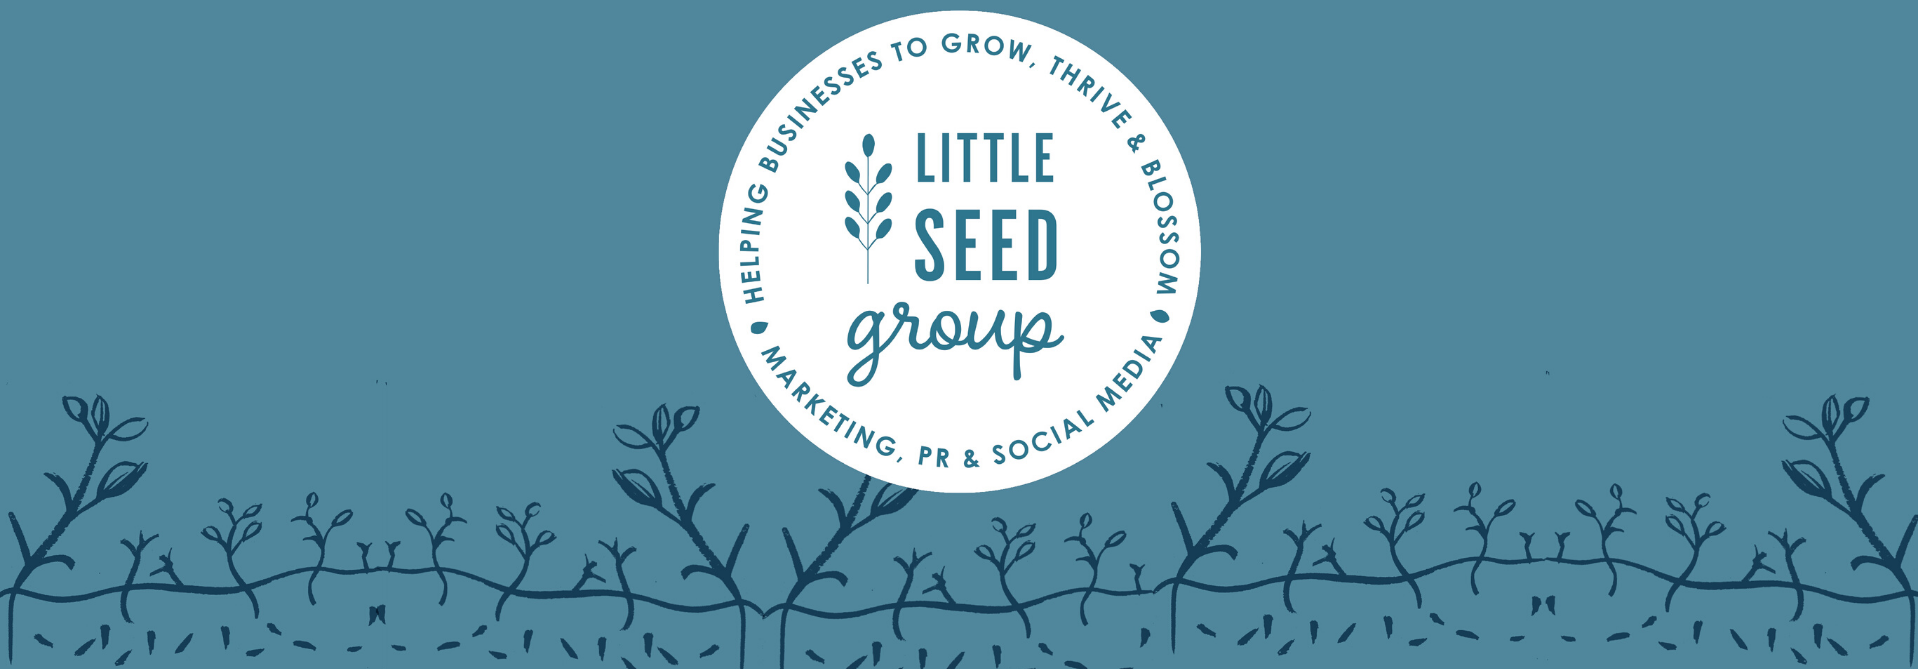 Little Seed Group original branding